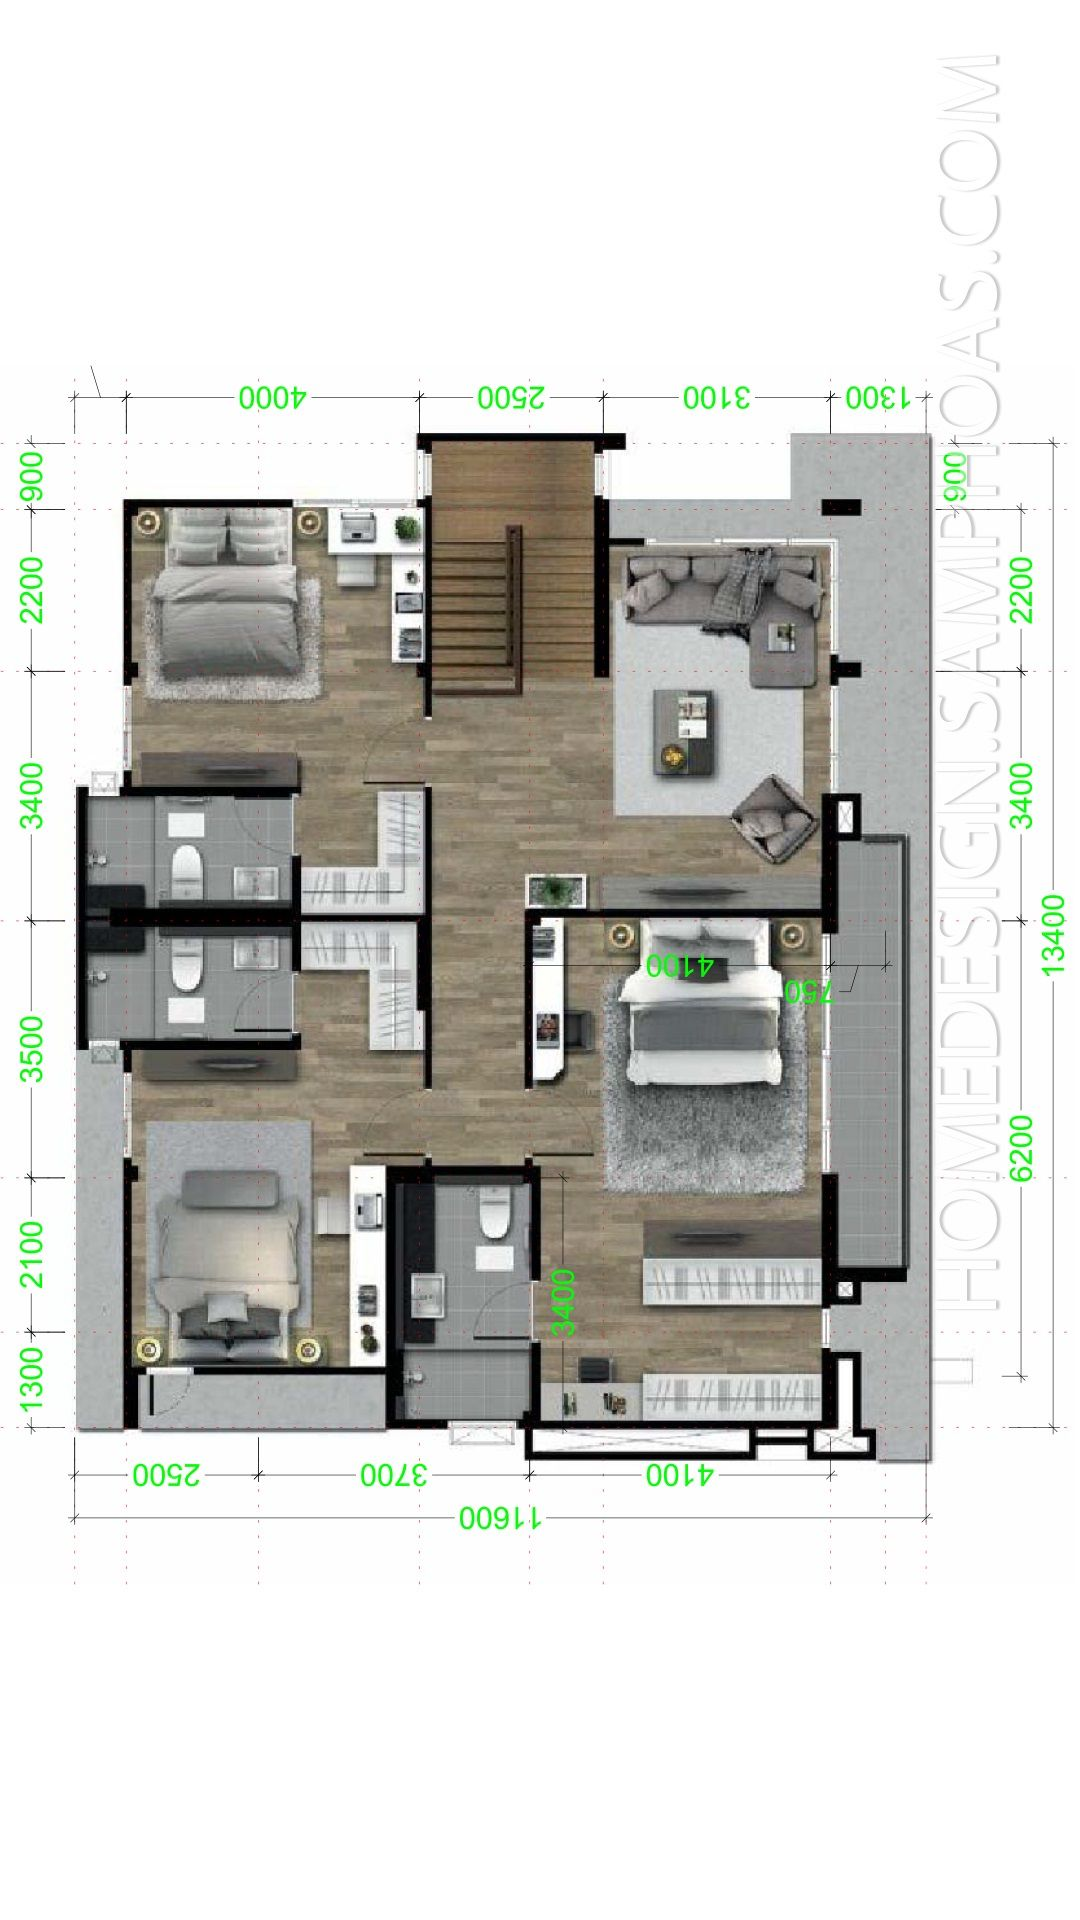 House Design Plans 13x14m With 4 Bedrooms Home Ideas Home Design Plans House Design Two Story House Design